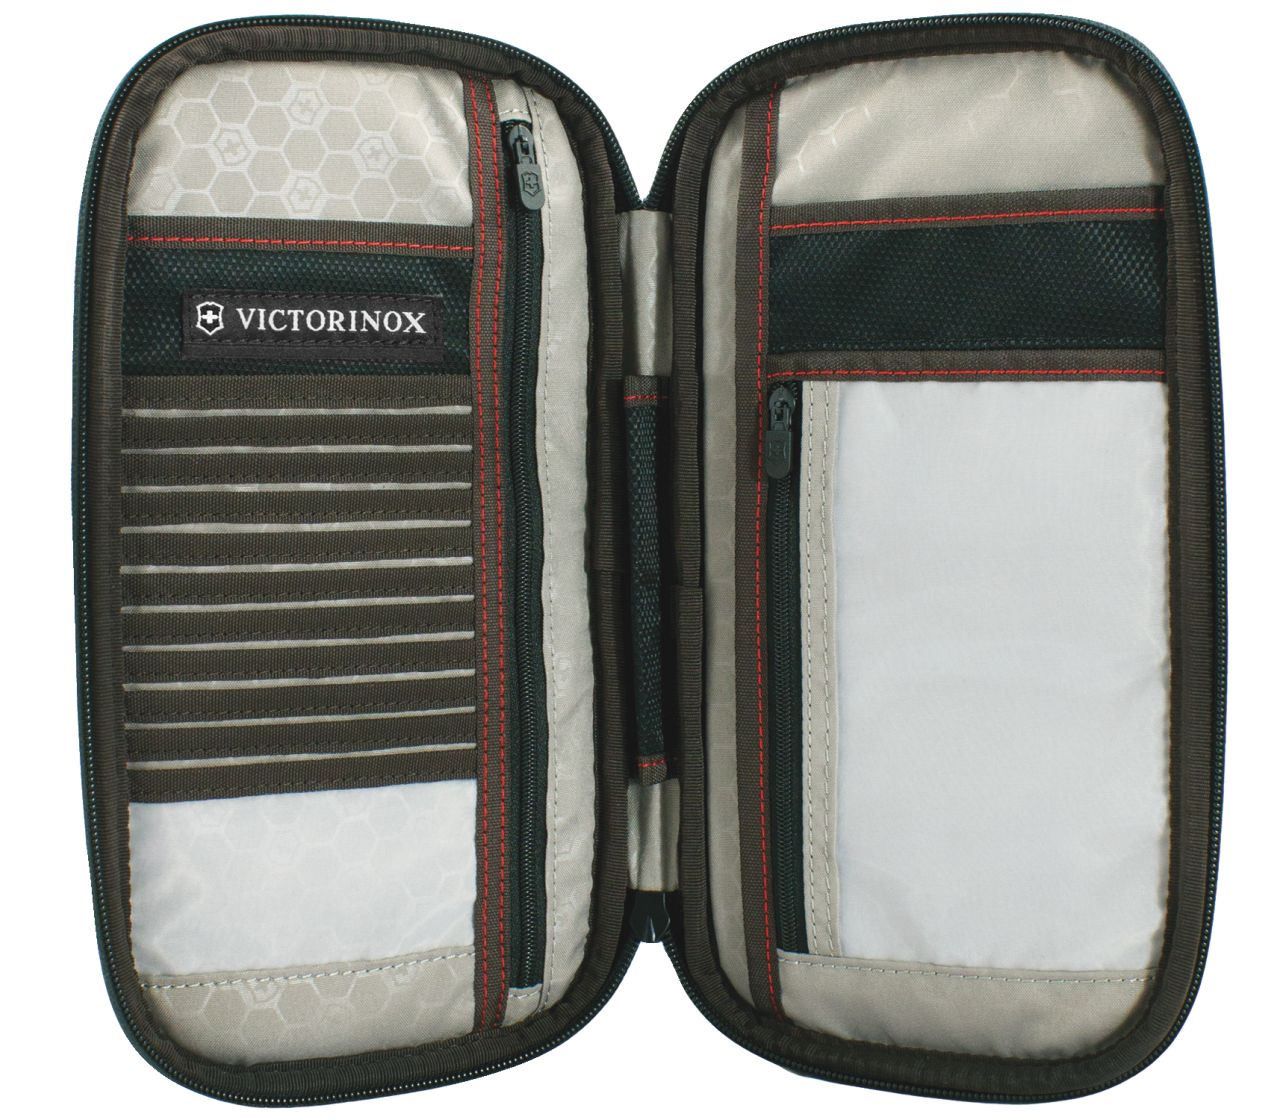 Victorinox Gear Travel Organizer With Rfid Protection